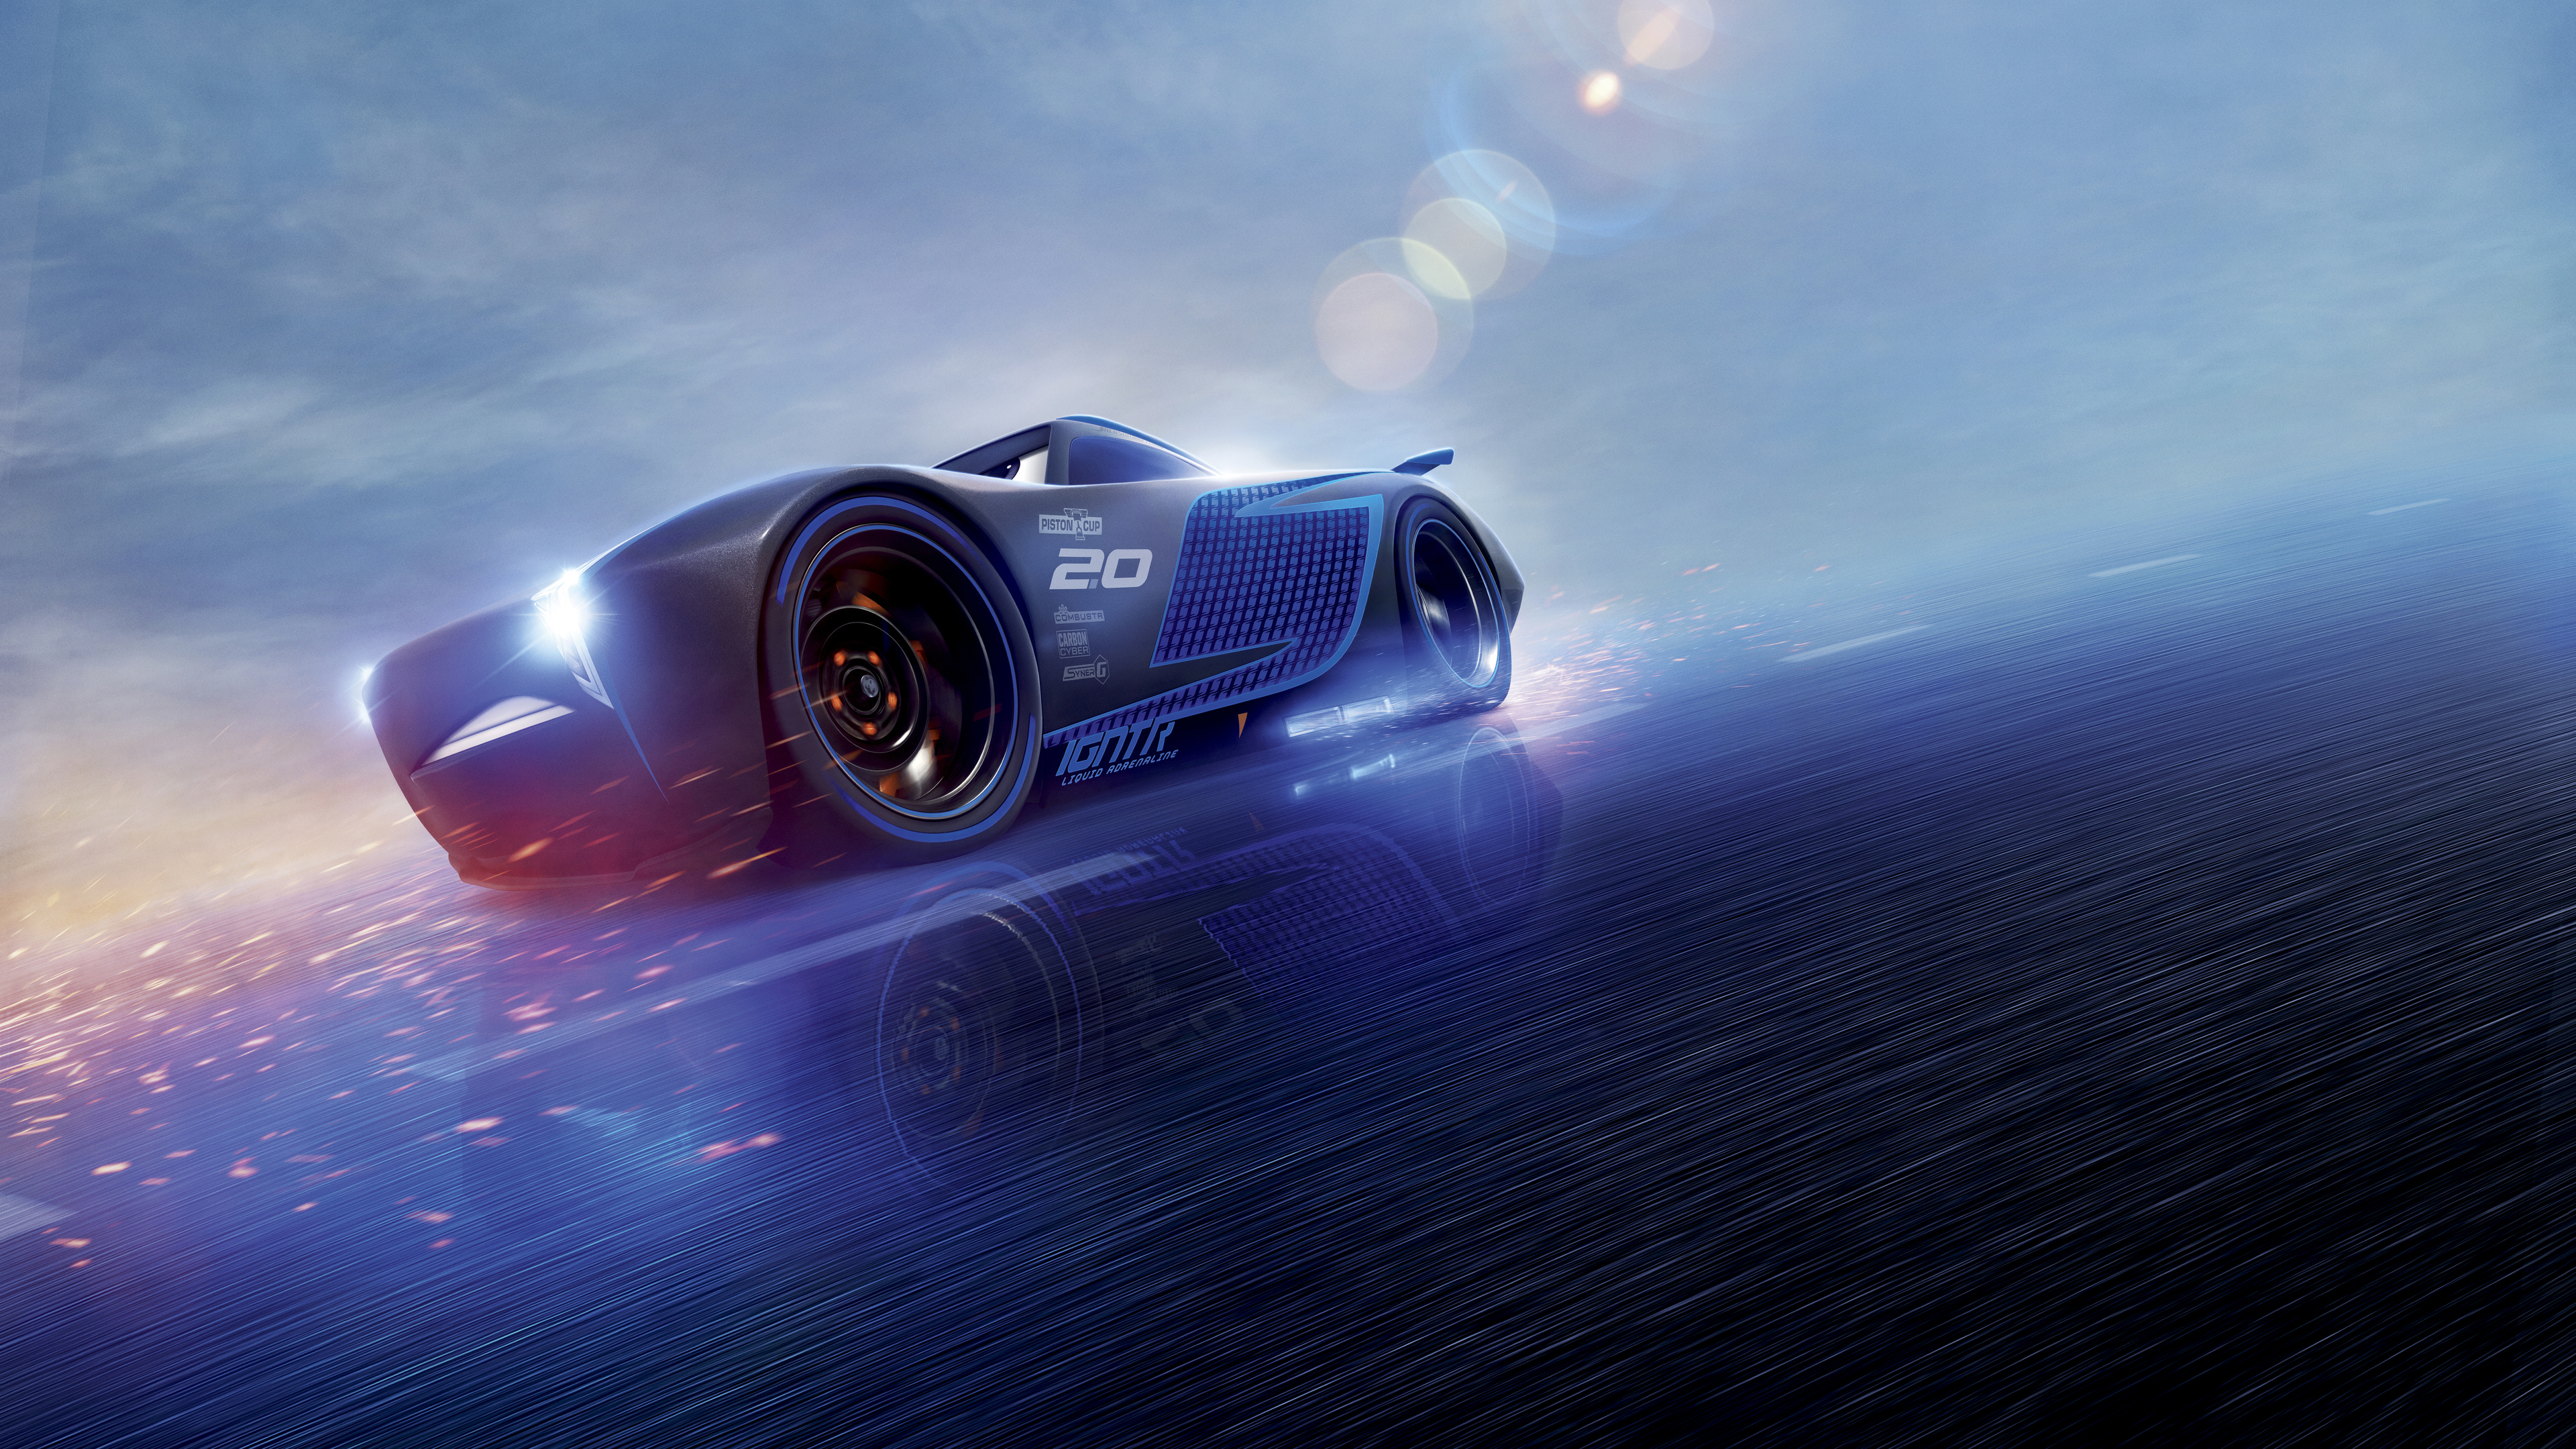 Cars 3 Jackson Storm 4k movies wallpapers, hd-wallpapers ...